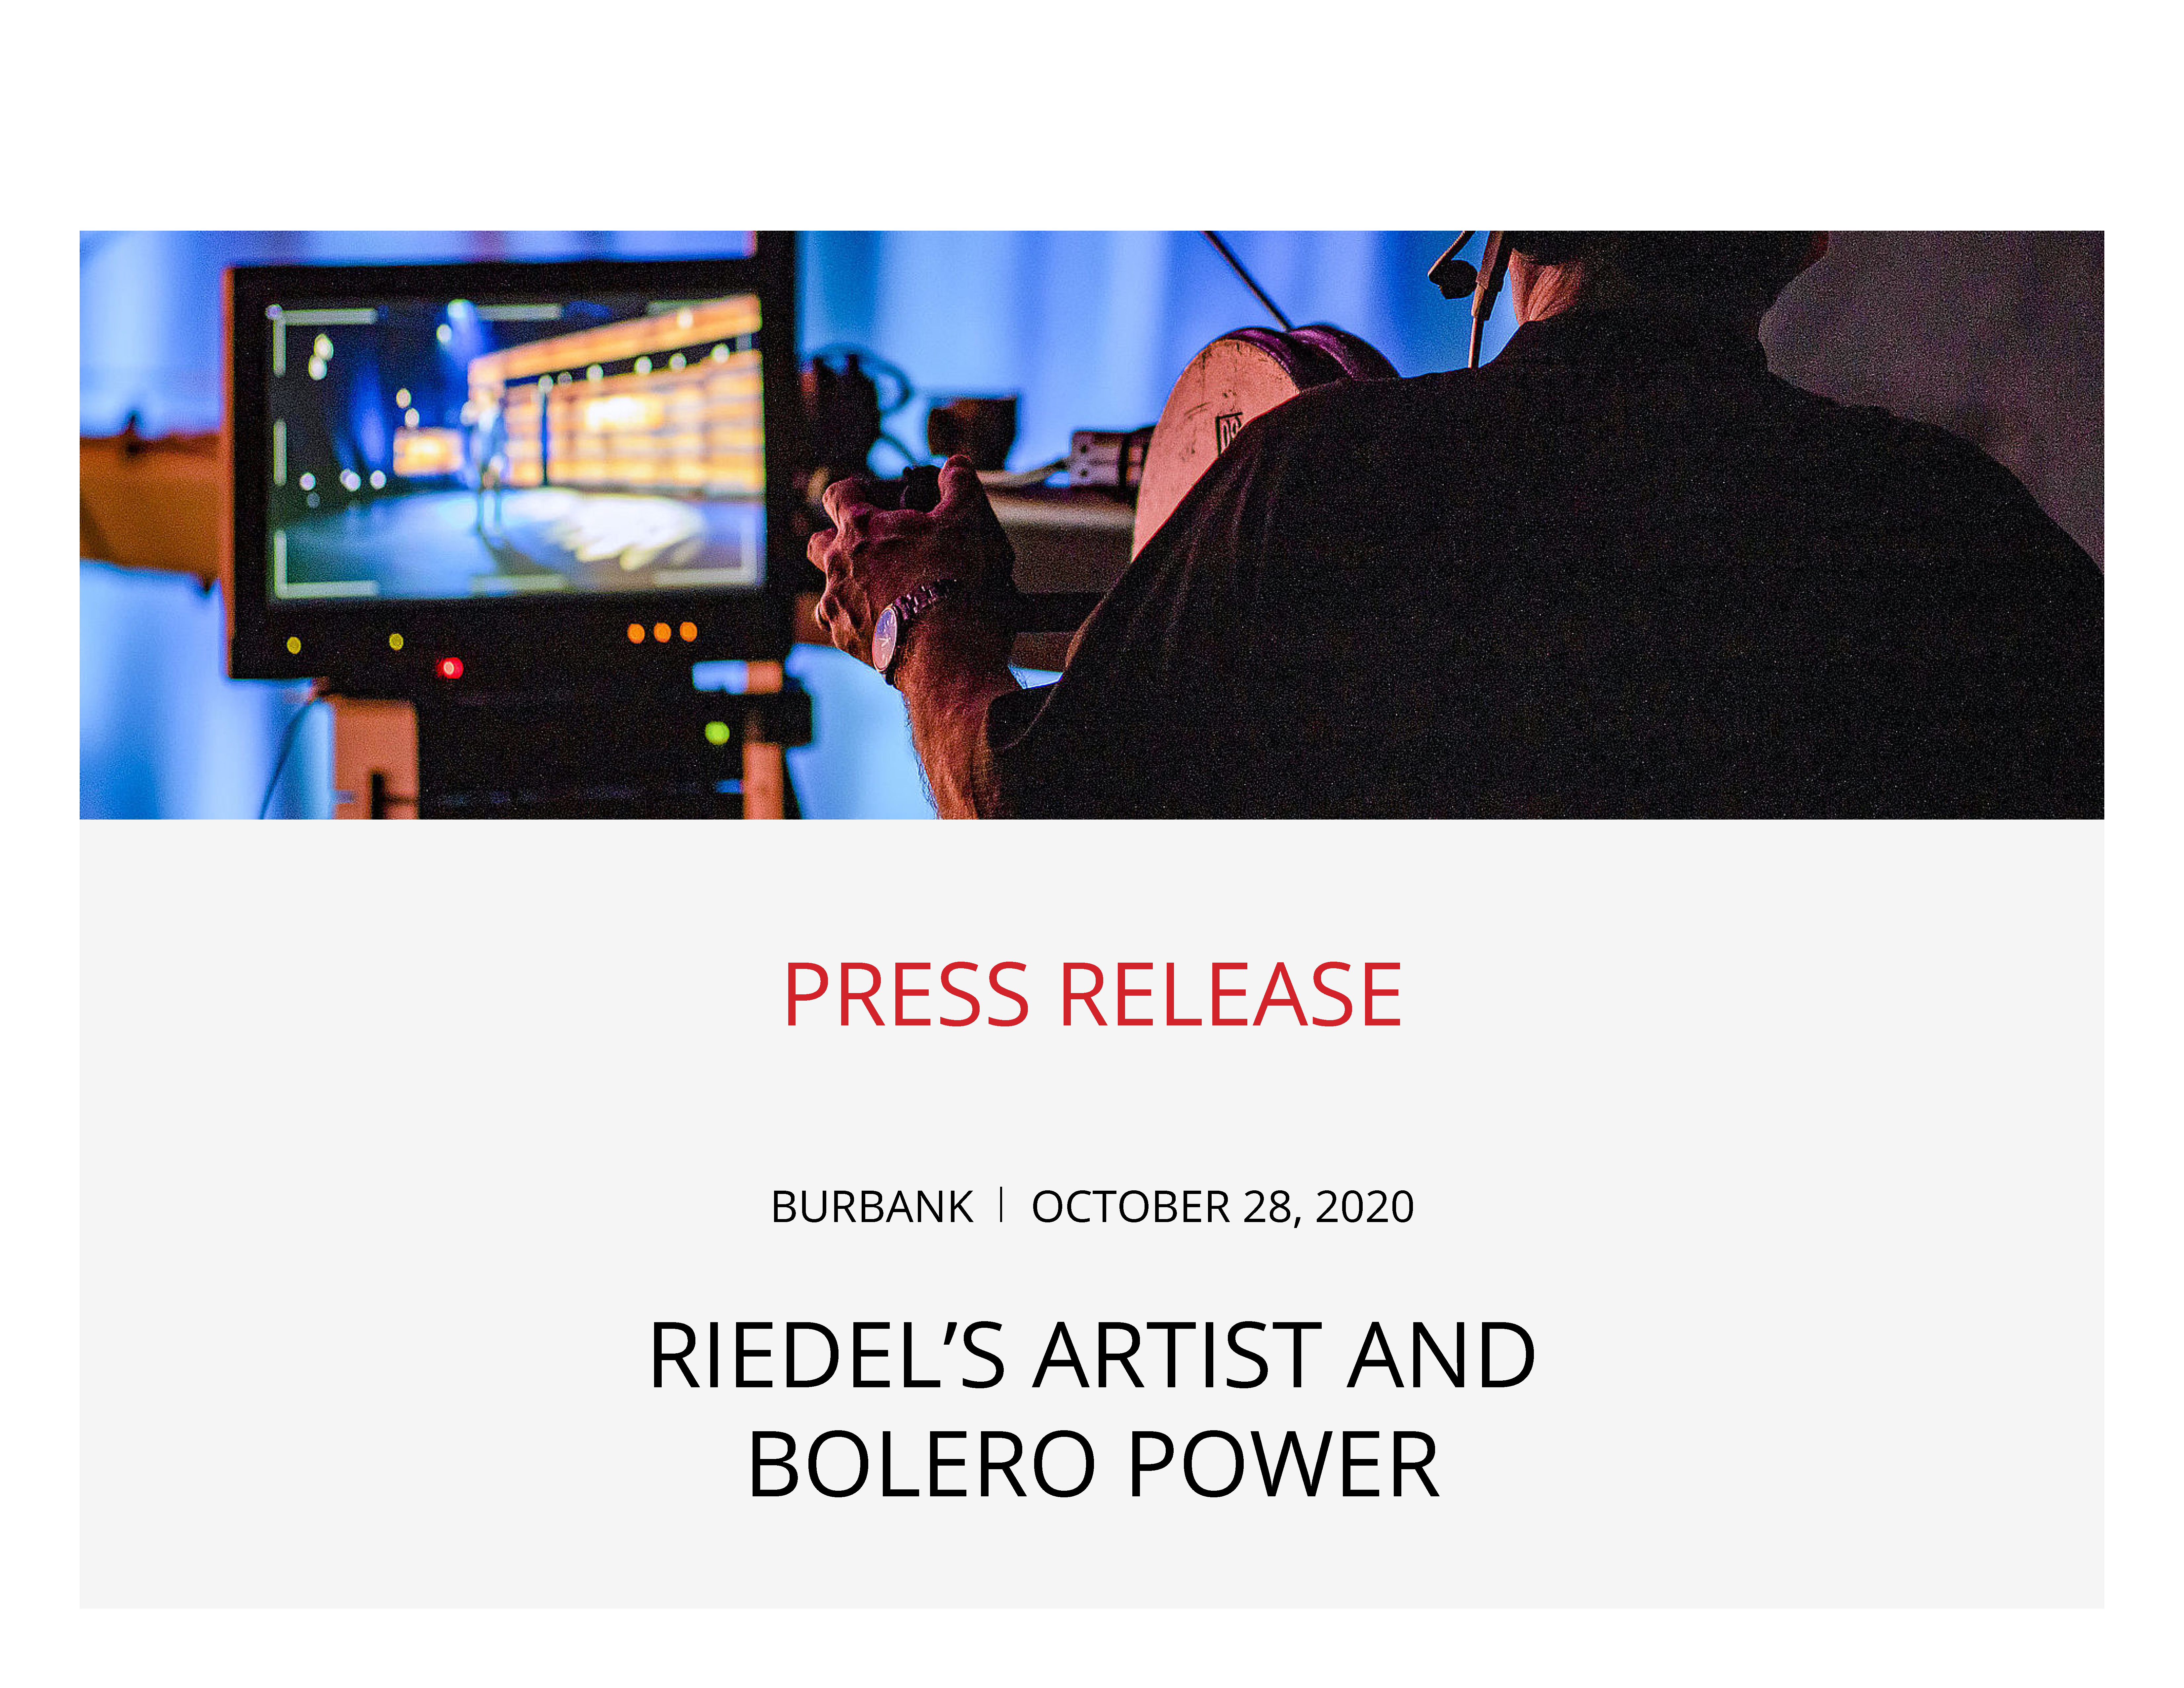 https://www.riedel.net/news/news-detail/riedels-artist-and-bolero-power-comprehensive-comms-upgrade-for-daystar-television-network/